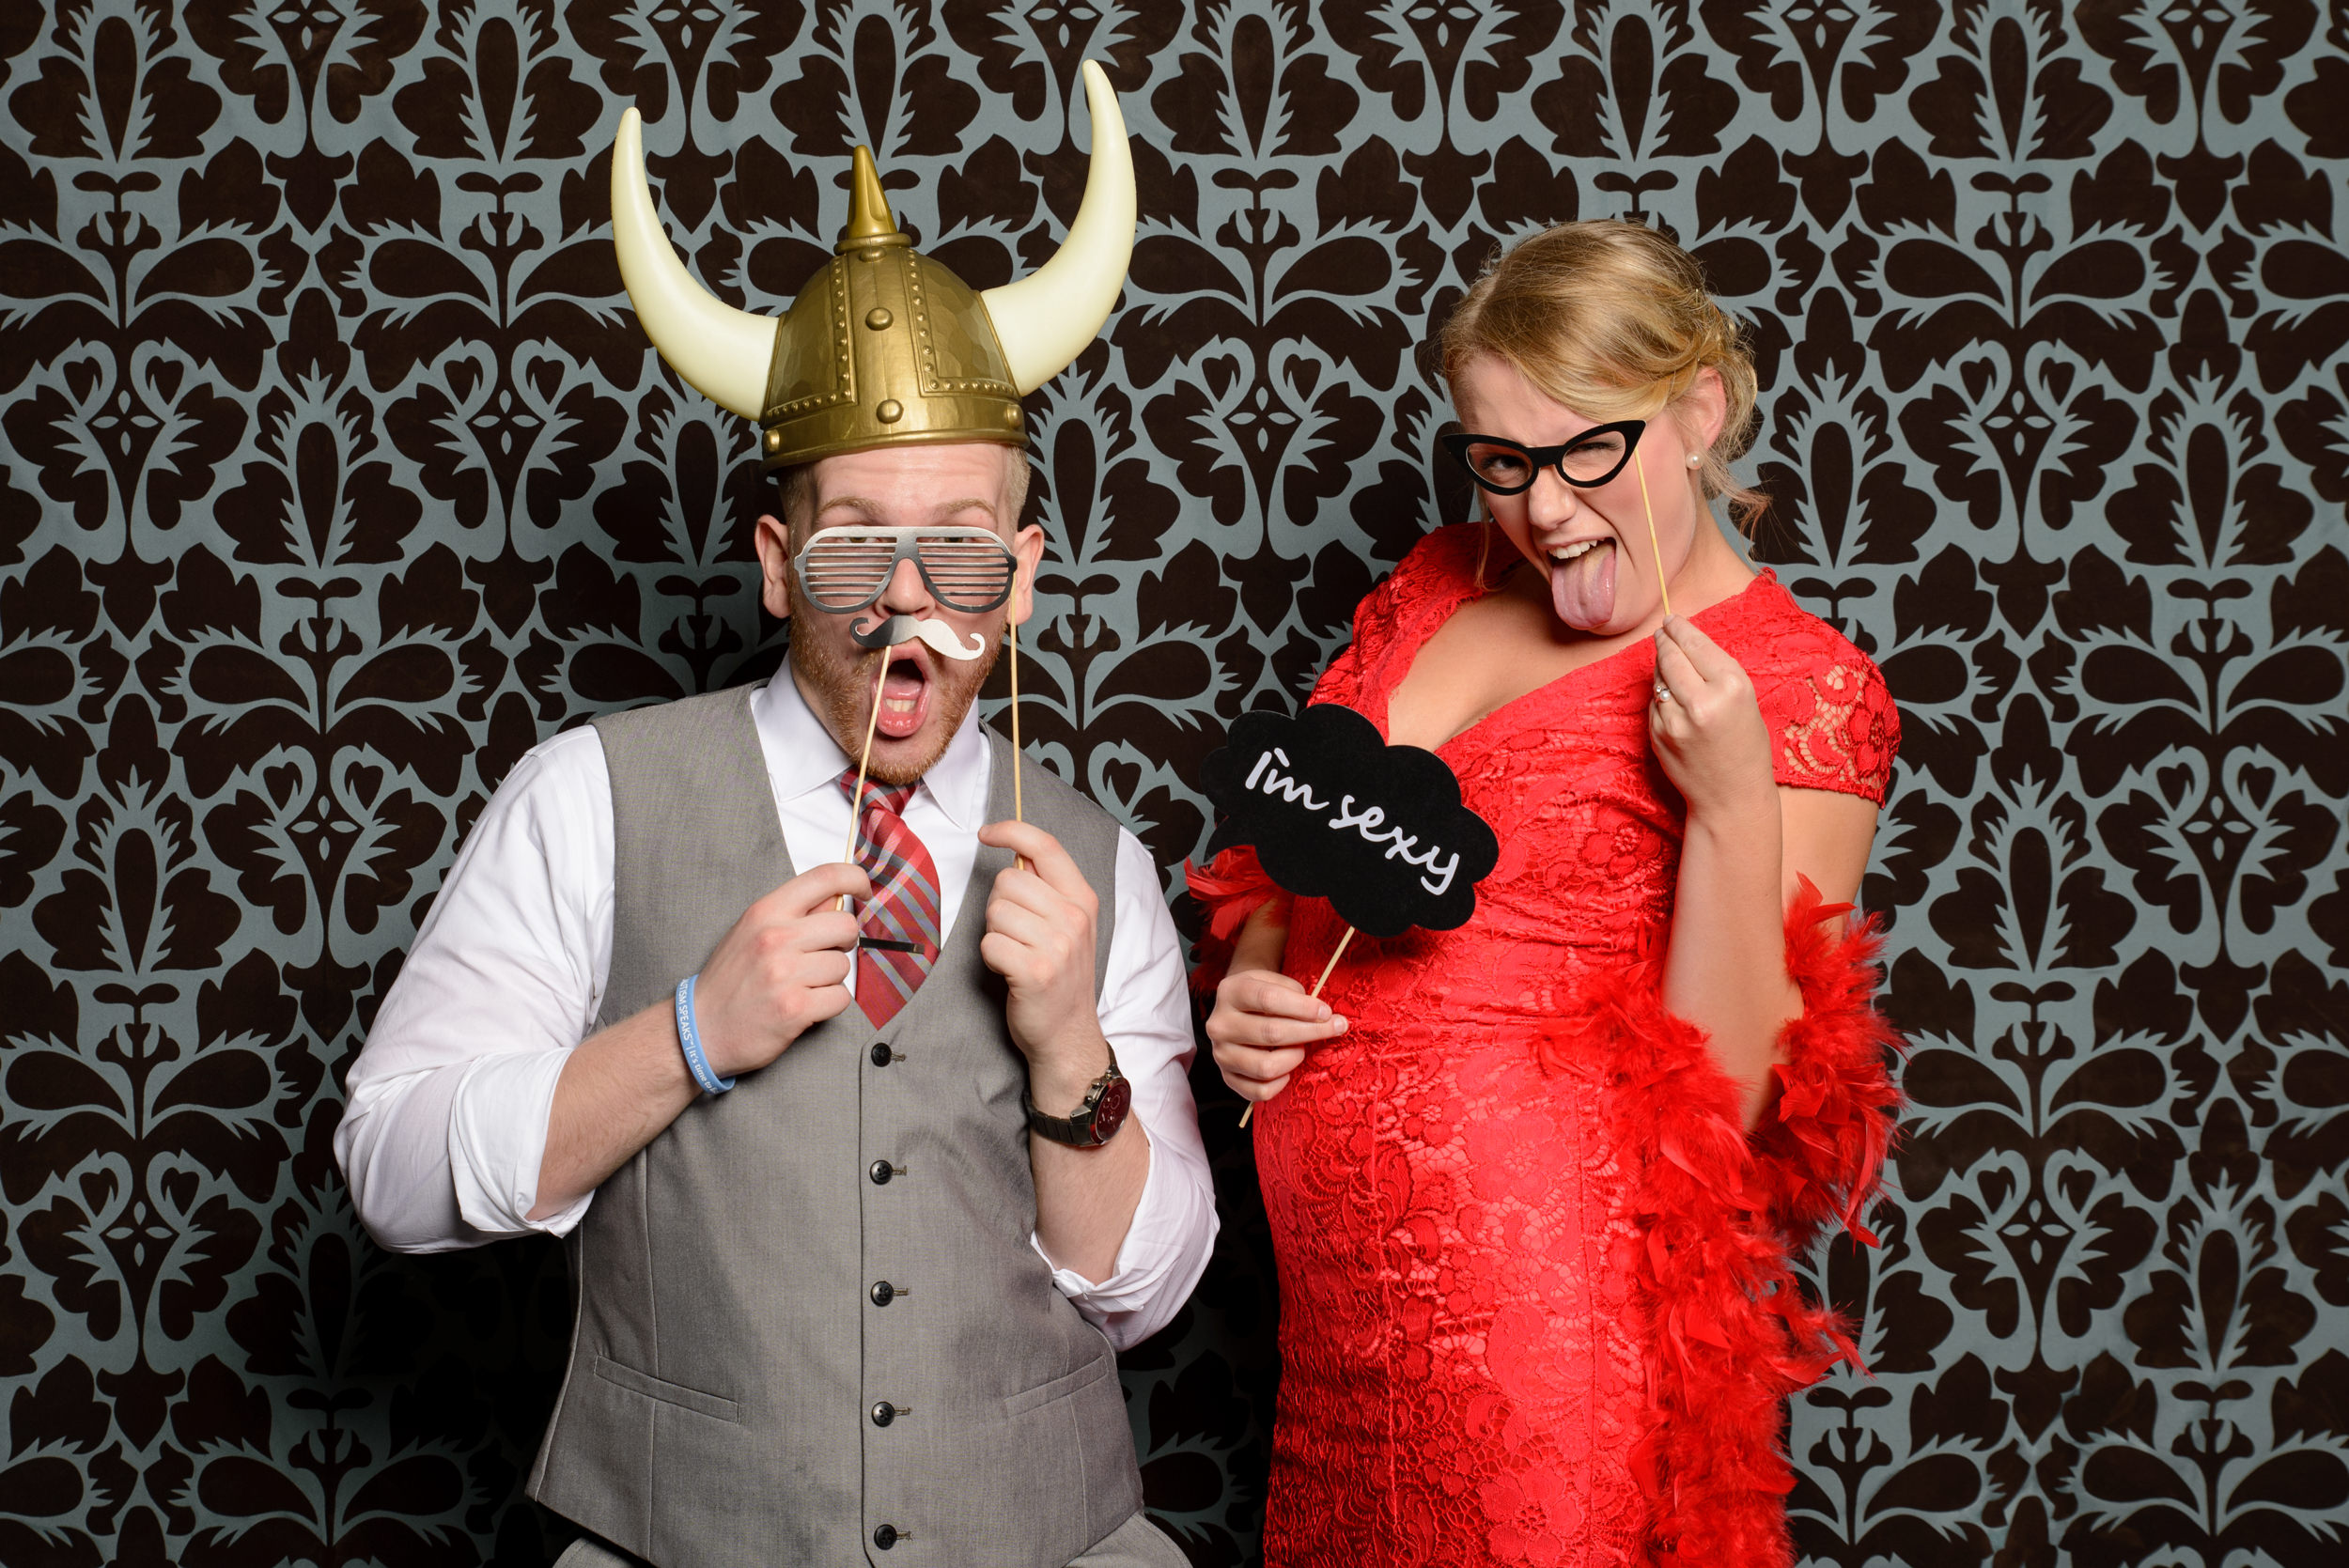 philadelphia-photo-booth-8